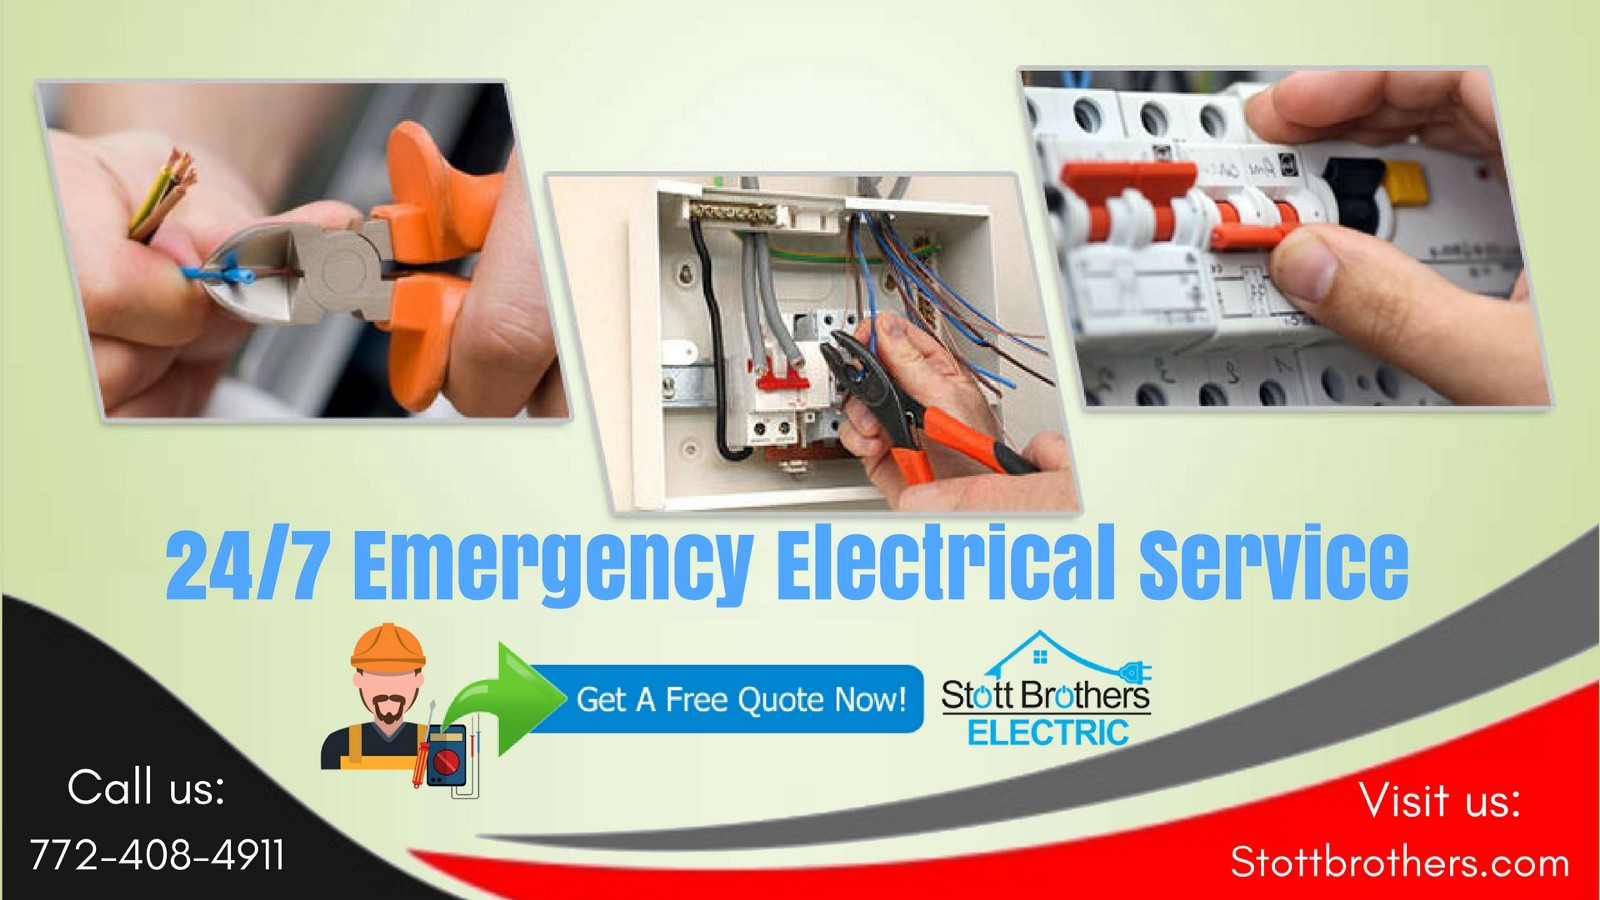 24/7 Emergency Electrical Service – Stott Brothers Electric – Medium